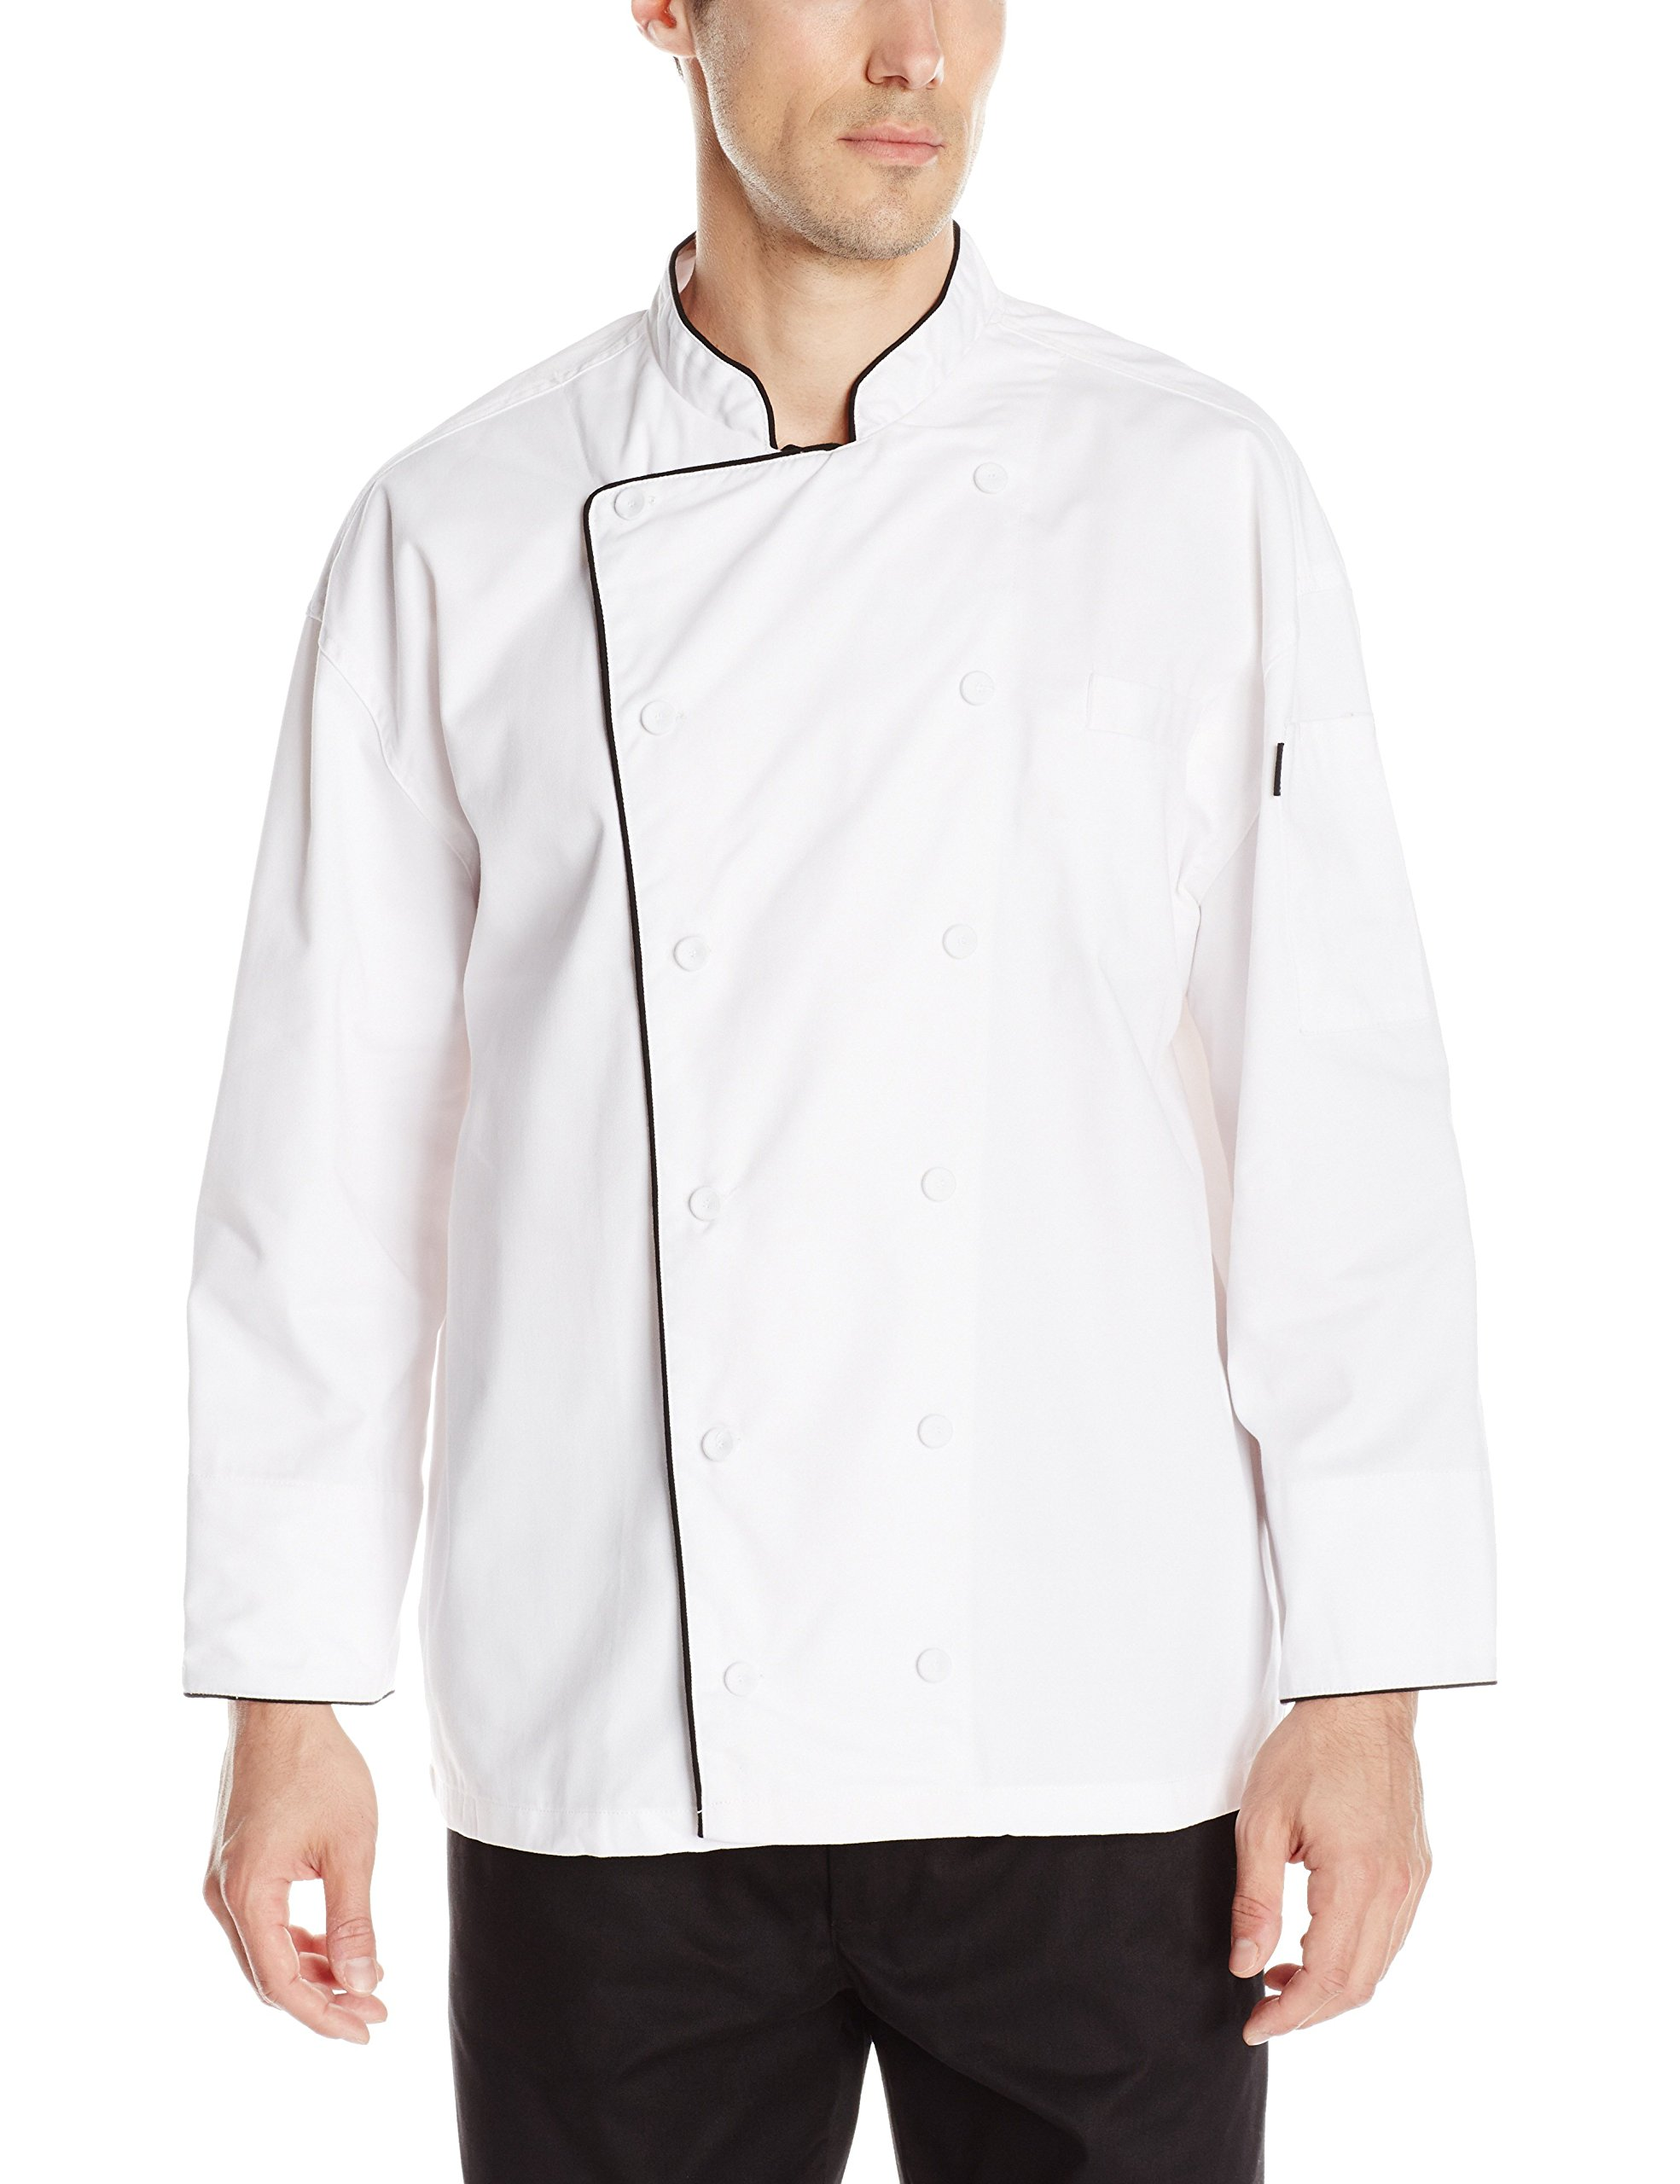 Chef Code Men's Black Trimmed Classic Executive Coat, White, Large